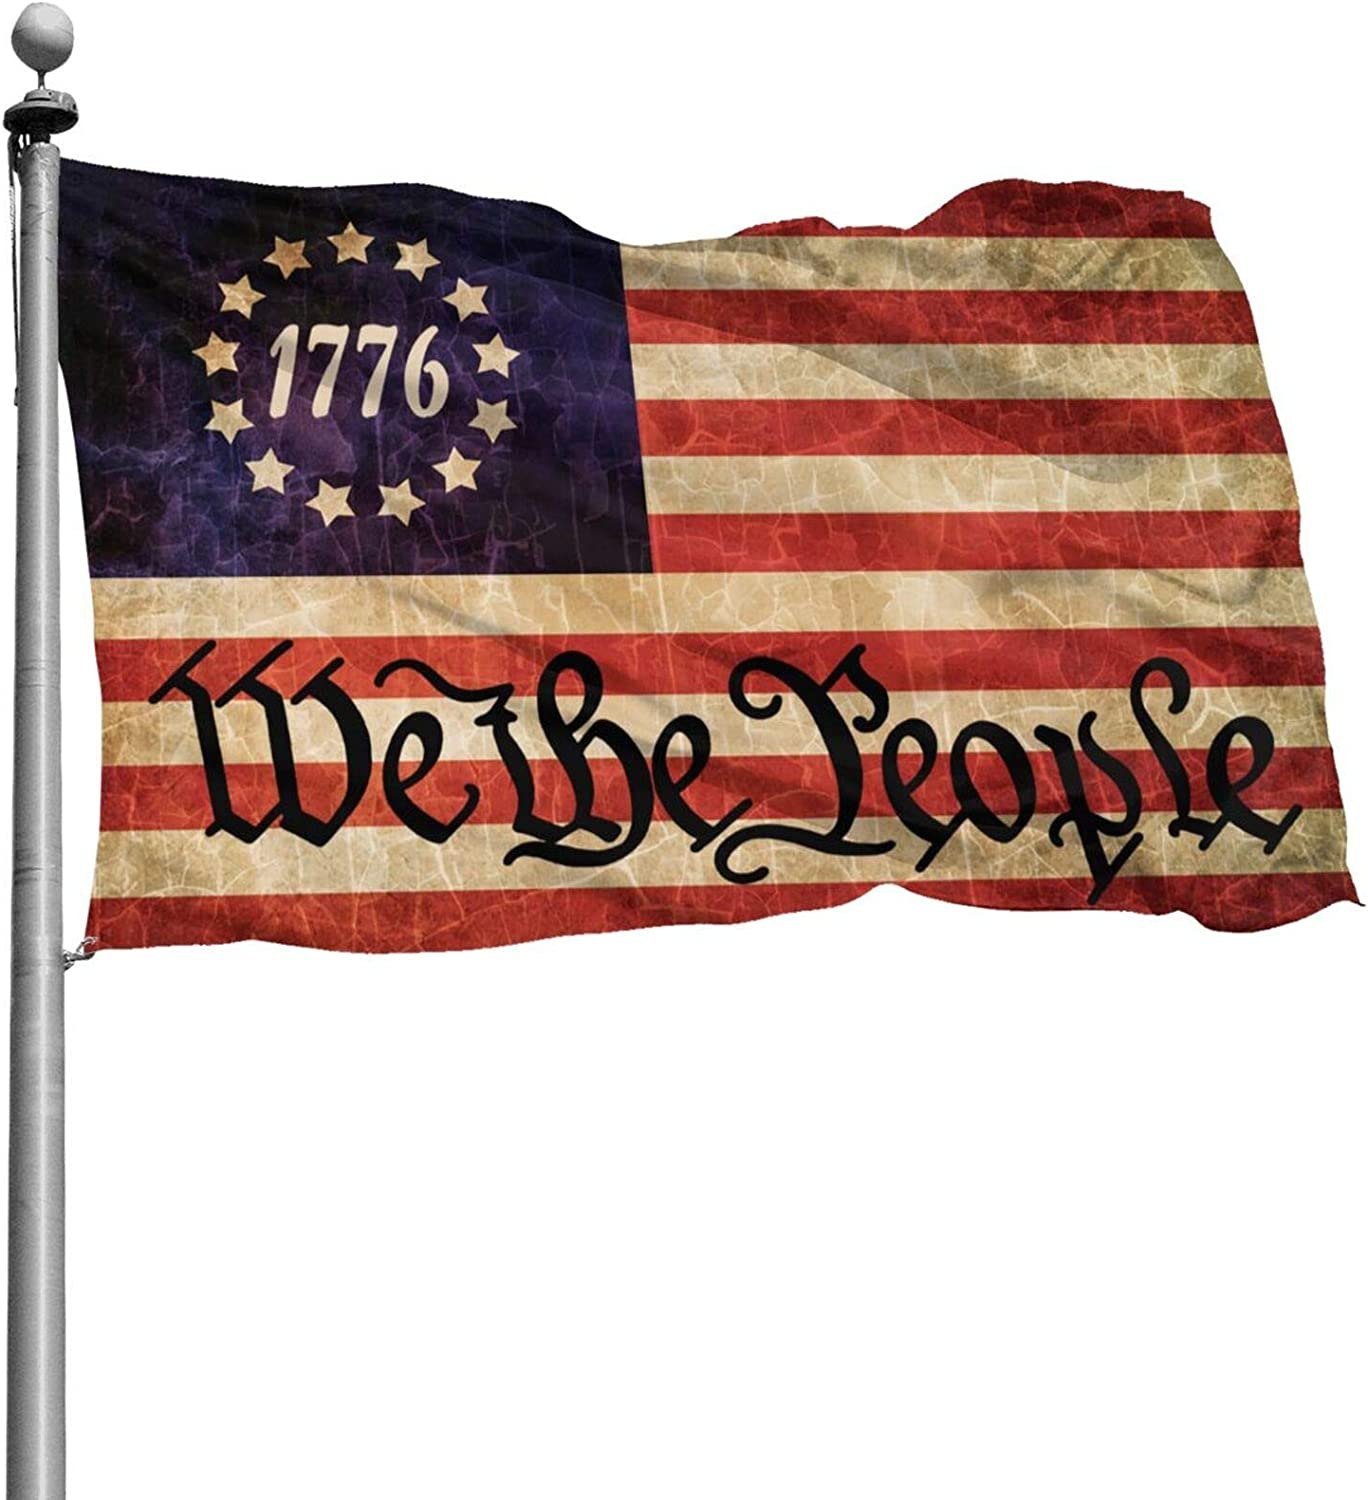 HUIHUANGm We The People Betsy Ross 1776 Flag Banner Flags Garden Flag Home House Flags Outdoor Flag USA Flag 4x6 Ft